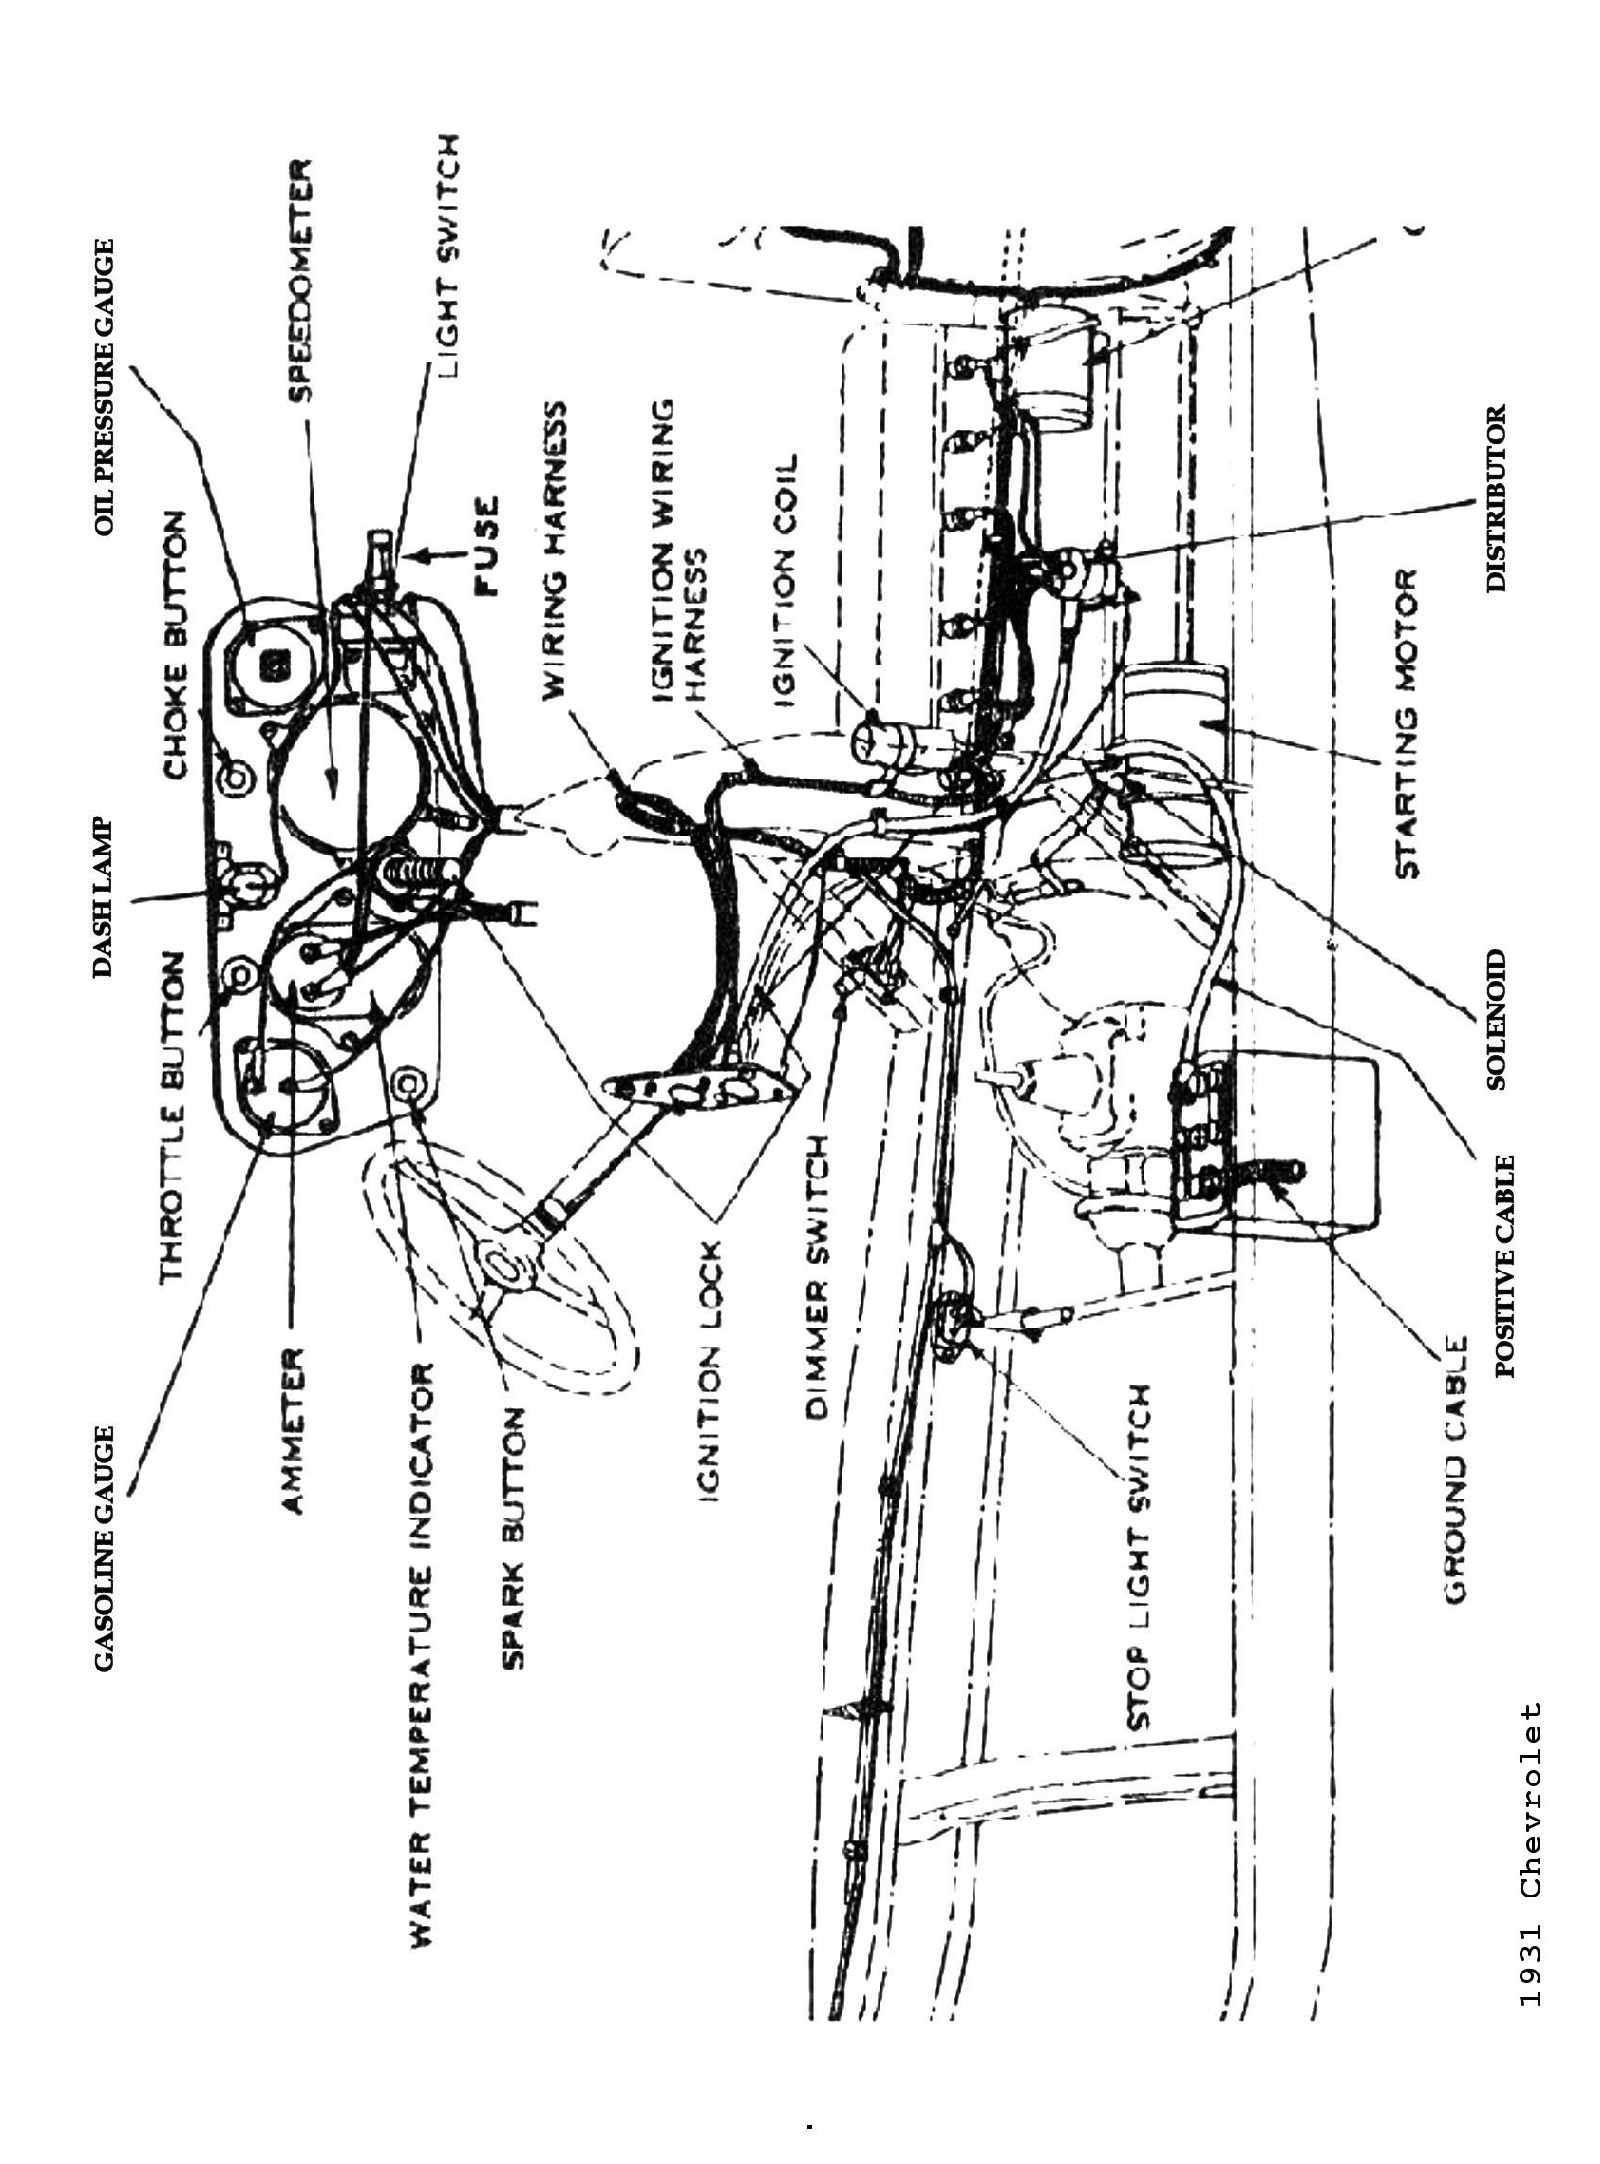 ignition switch wiring diagram for 1931 chevy